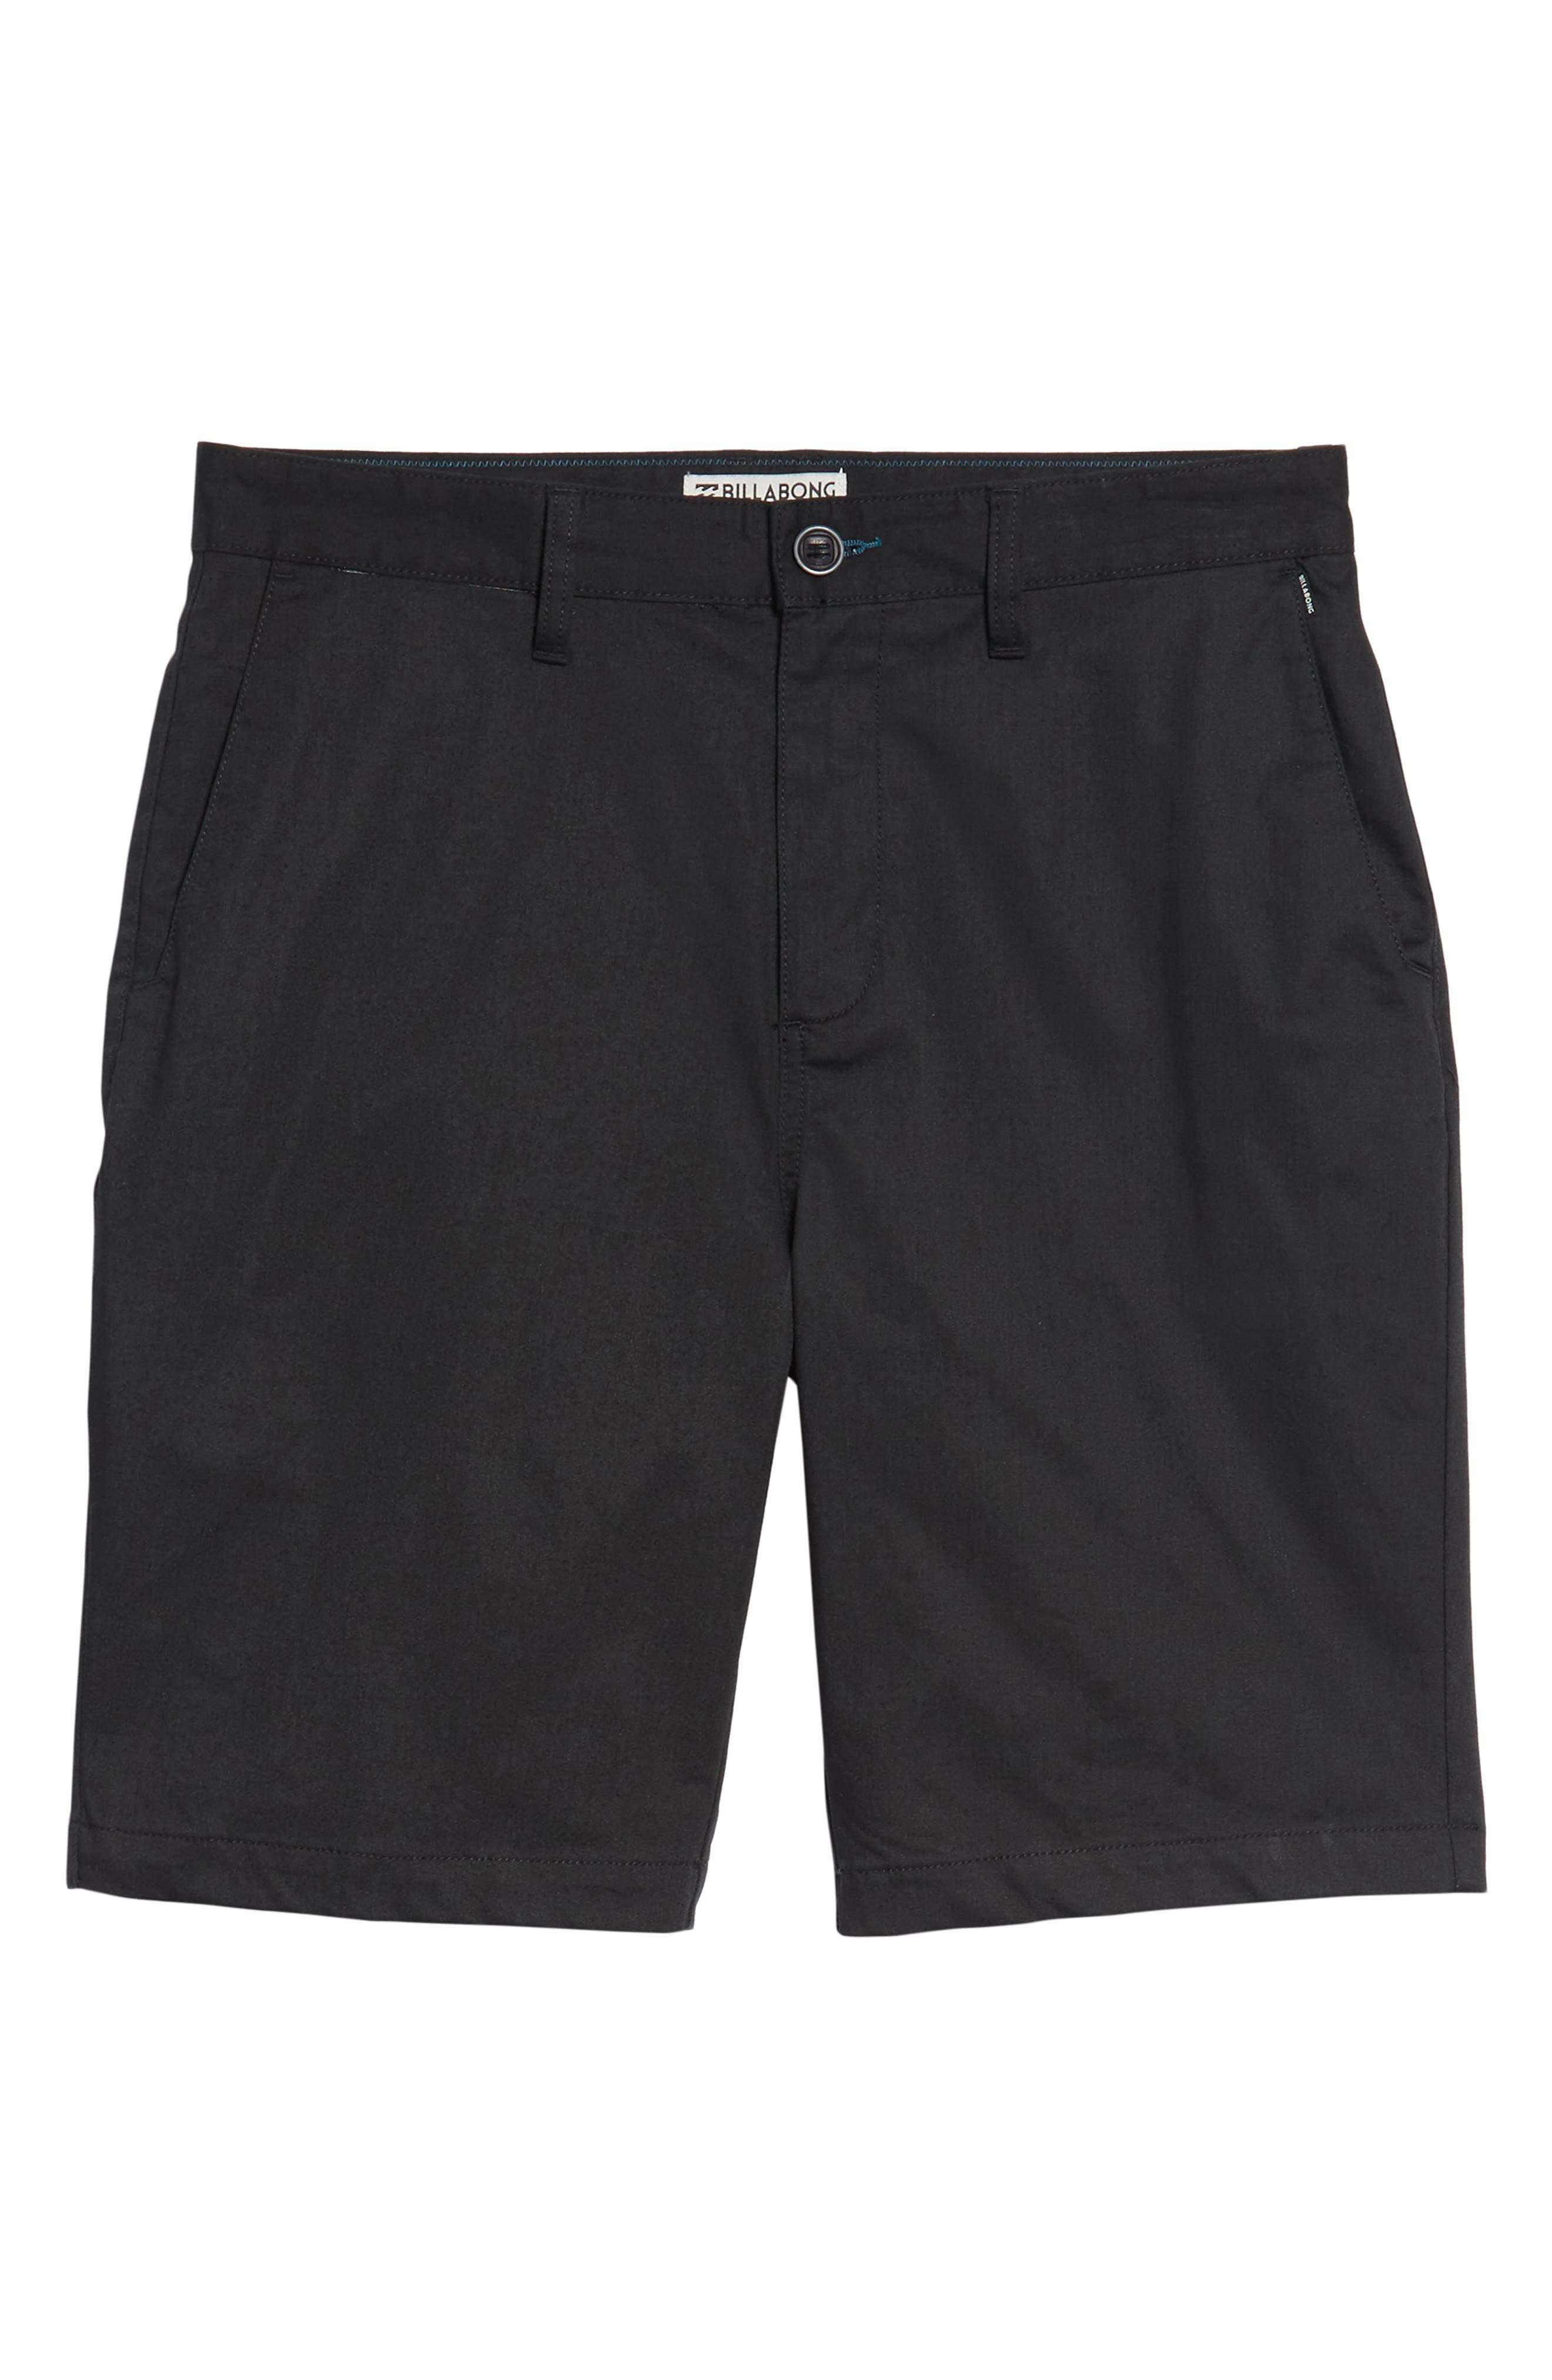 Carter Stretch Twill Shorts,                             Alternate thumbnail 6, color,                             002